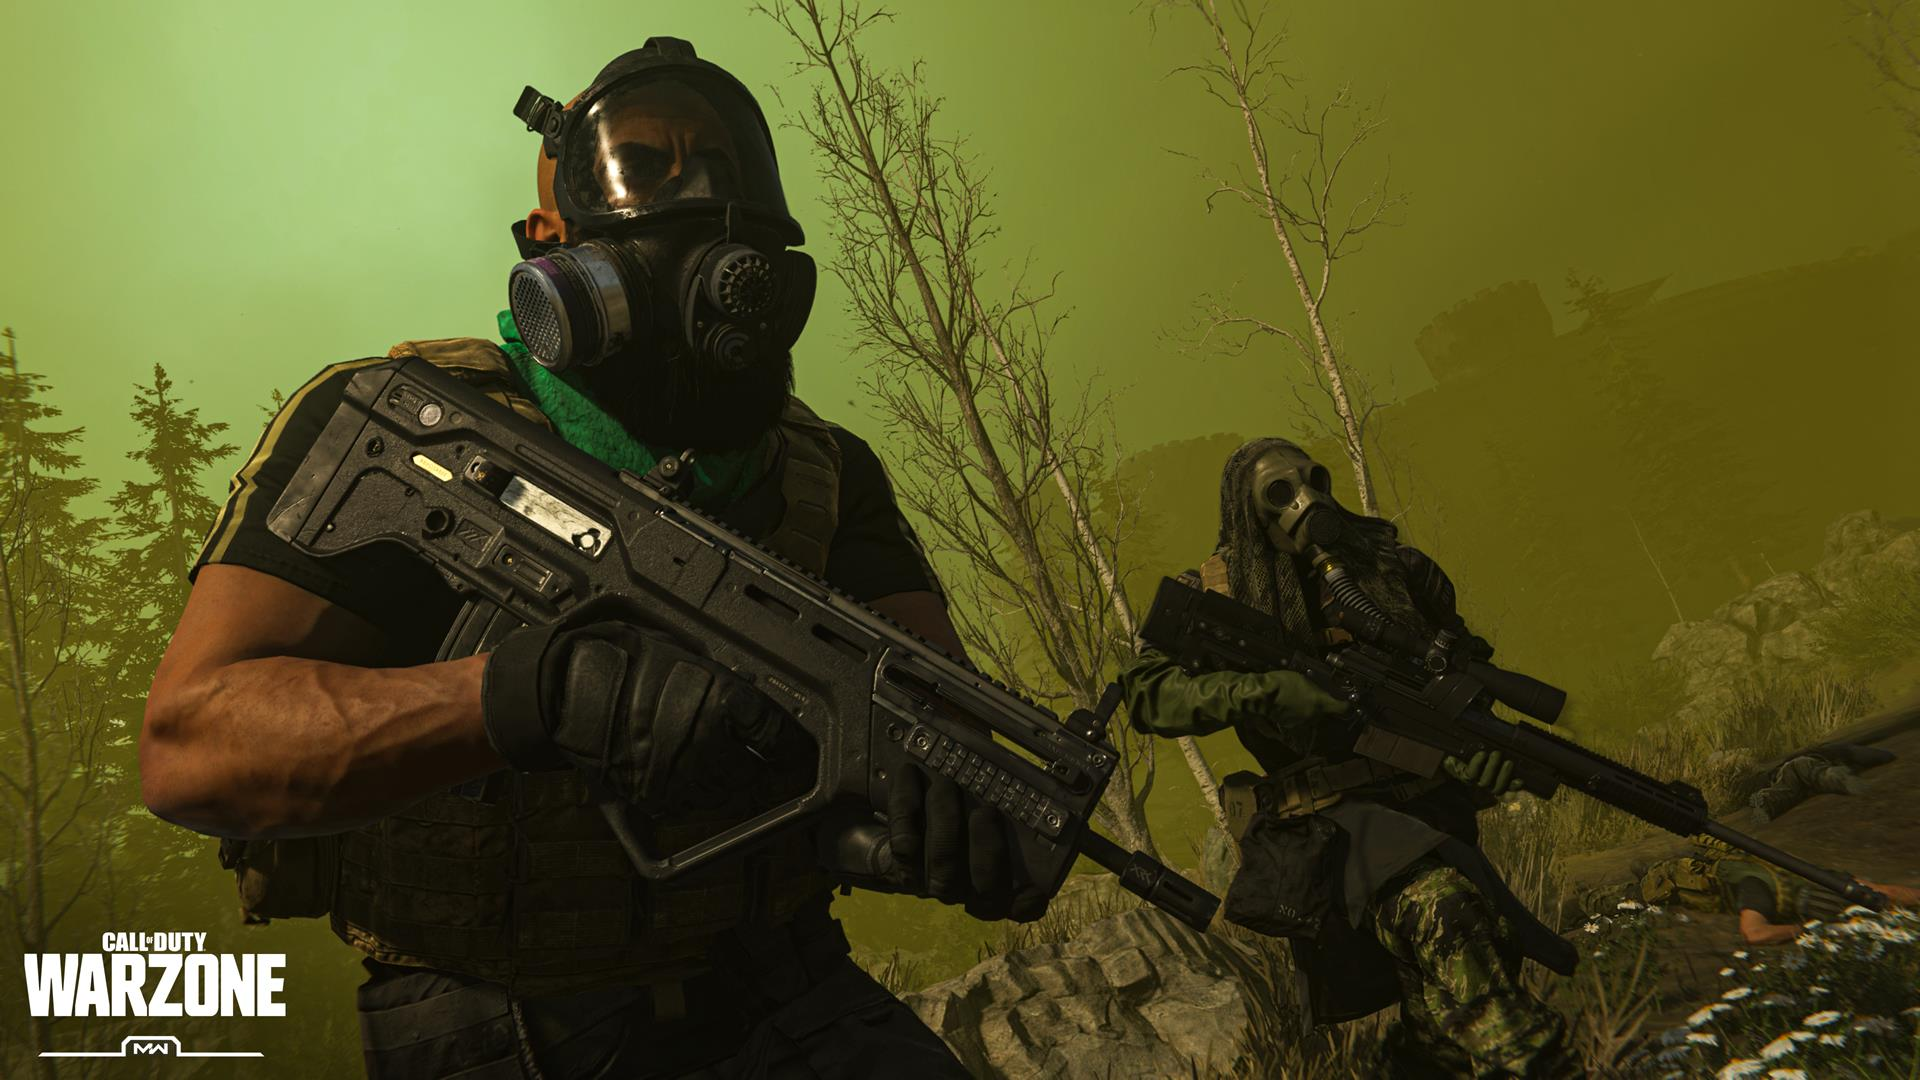 Double Xp And Weapon Xp Kick Off Tomorrow In Call Of Duty Warzone And Modern Warfare Vg247